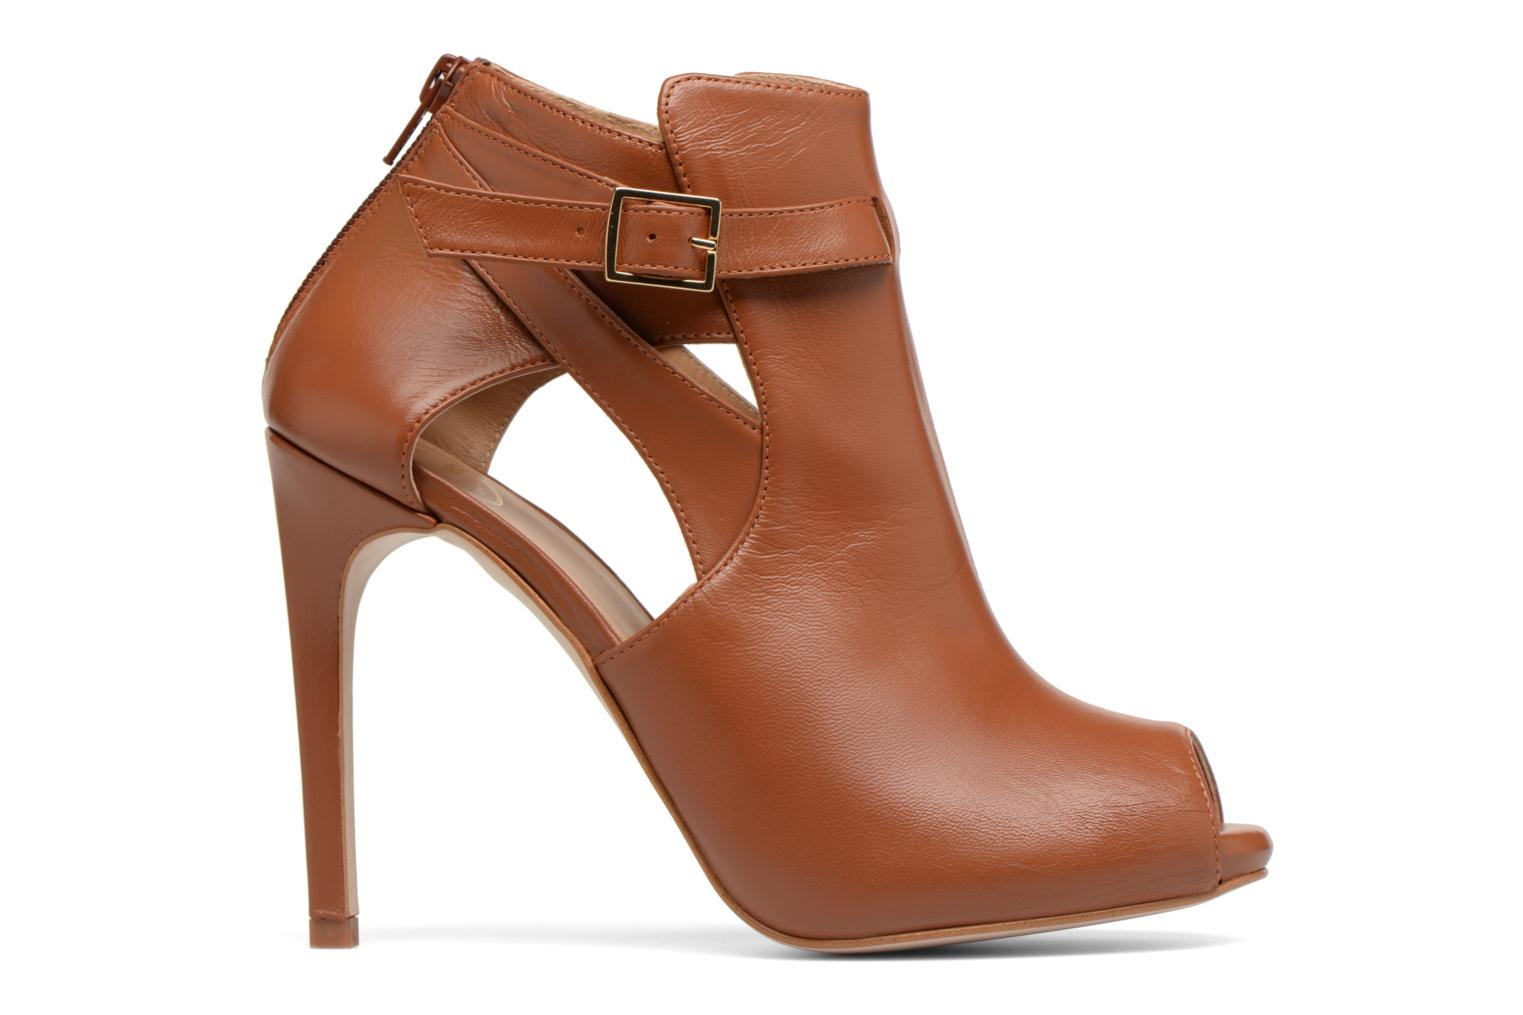 Marques Chaussure femme Made by SARENZA femme Carioca Crew Boots #2 Cuir Lisse Camel